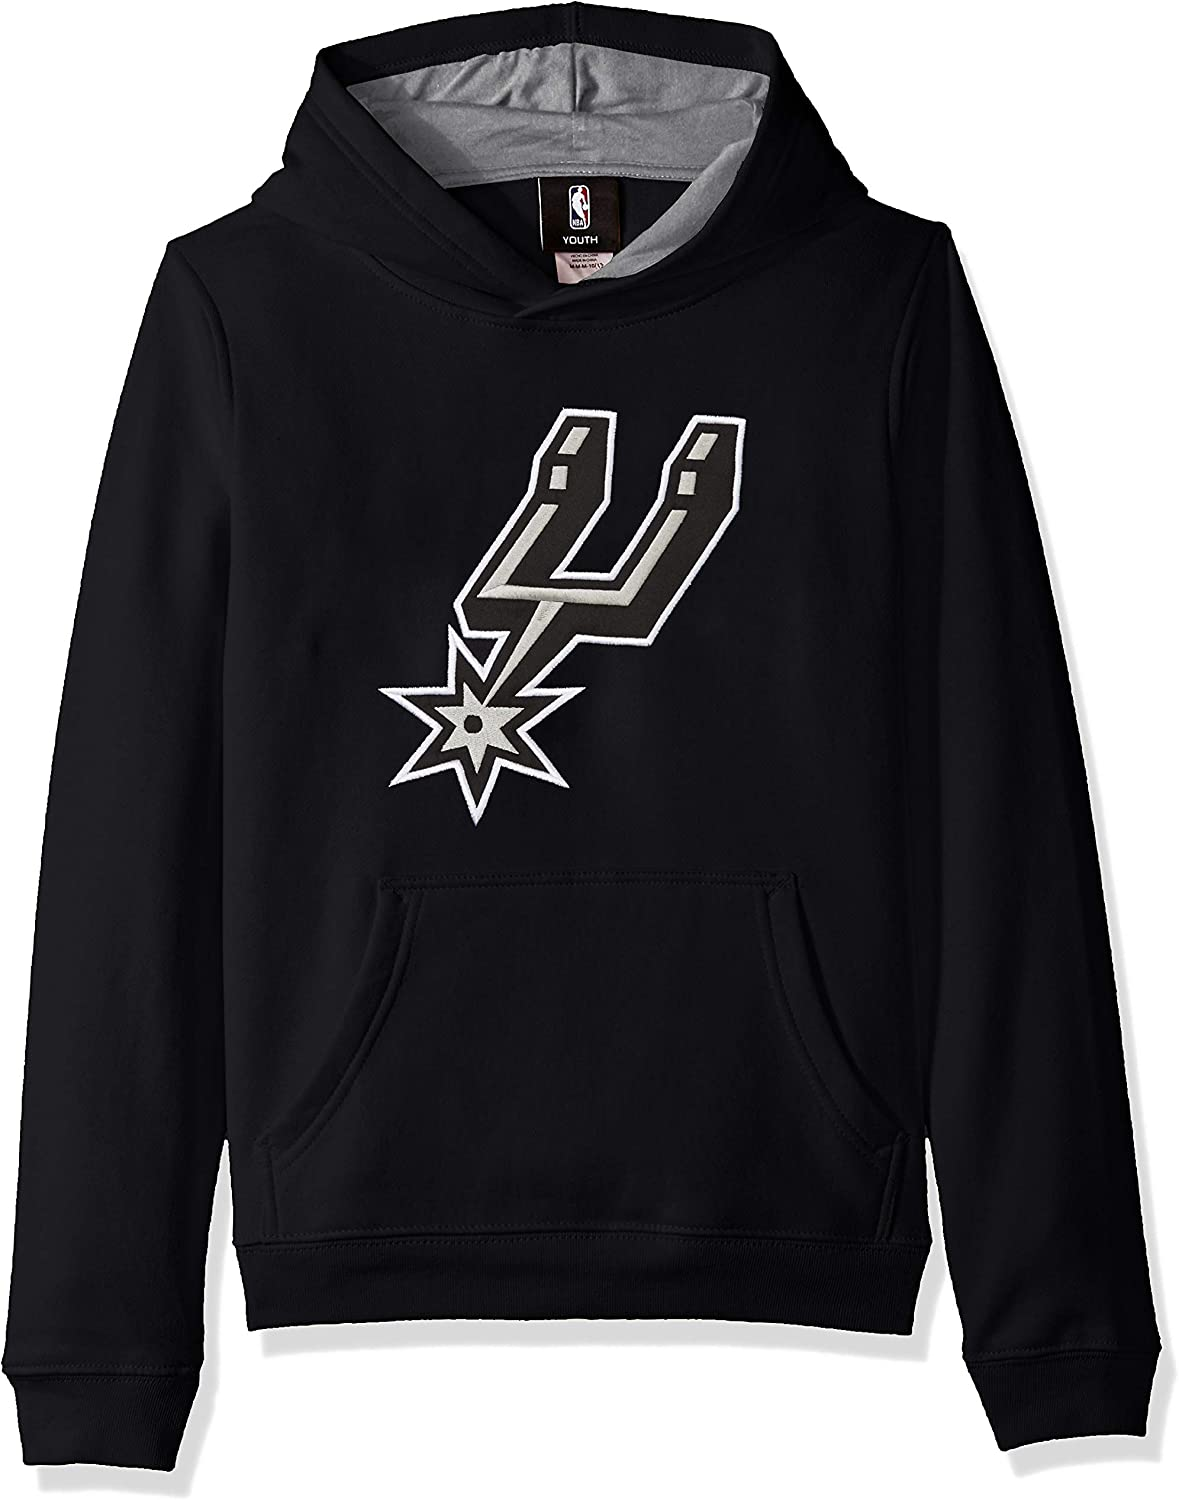 18 Youth X-Large NBA by Outerstuff Boys Prime Pullover Fleece Hoodie San Antonio Spurs Black